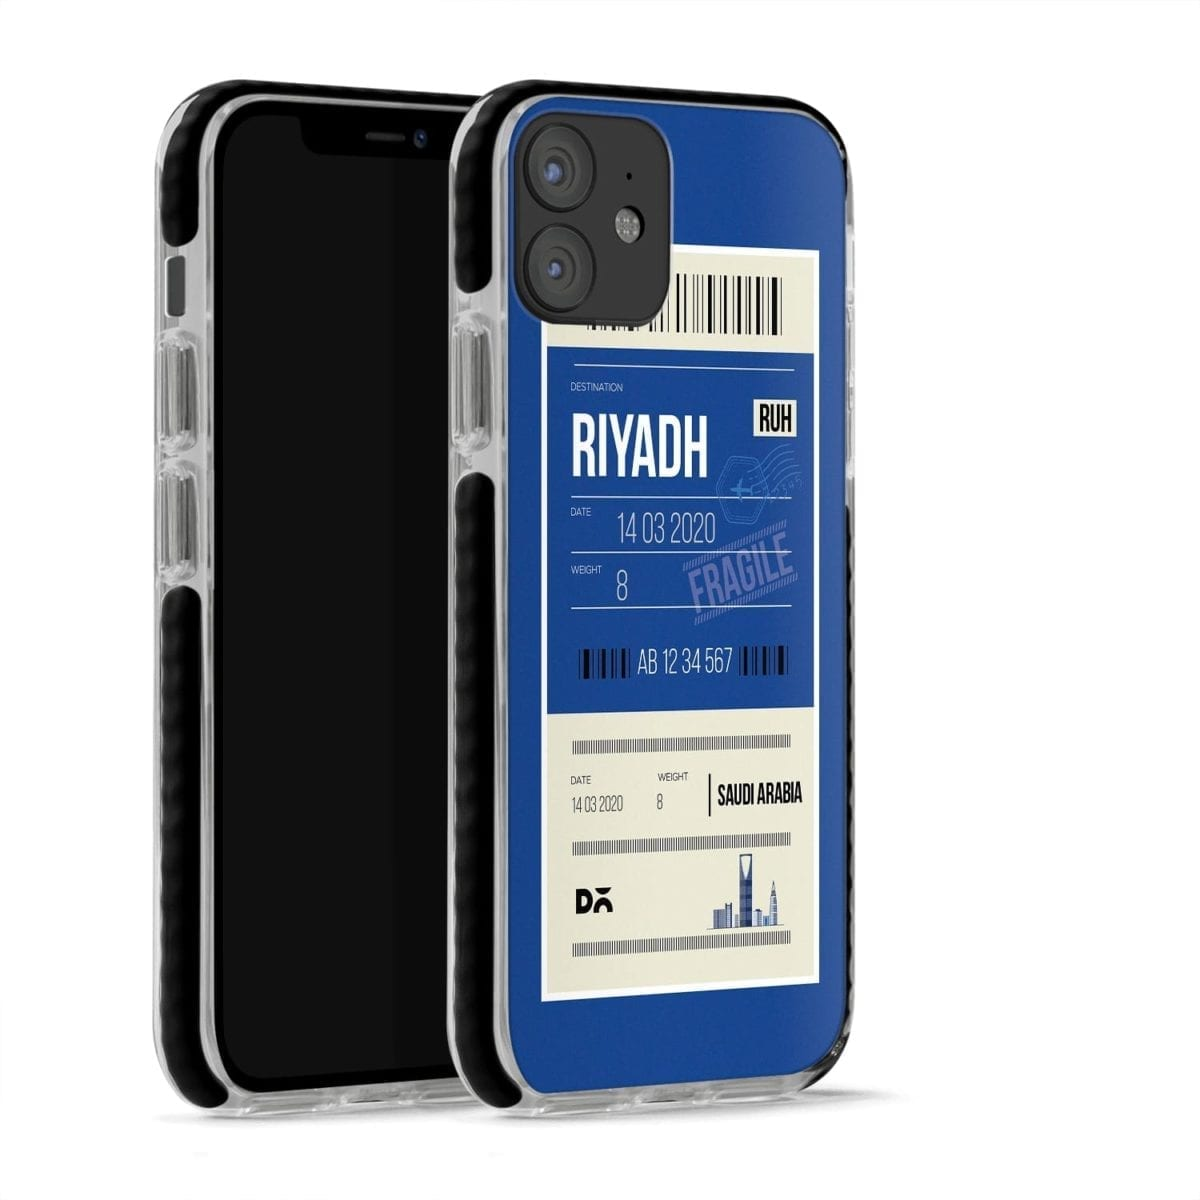 Riyadh City Tag Stride Case Cover for Apple iPhone 12 Mini and Apple iPhone 12 with great design and shock proof   Klippik   Online Shopping   Kuwait UAE Saudi